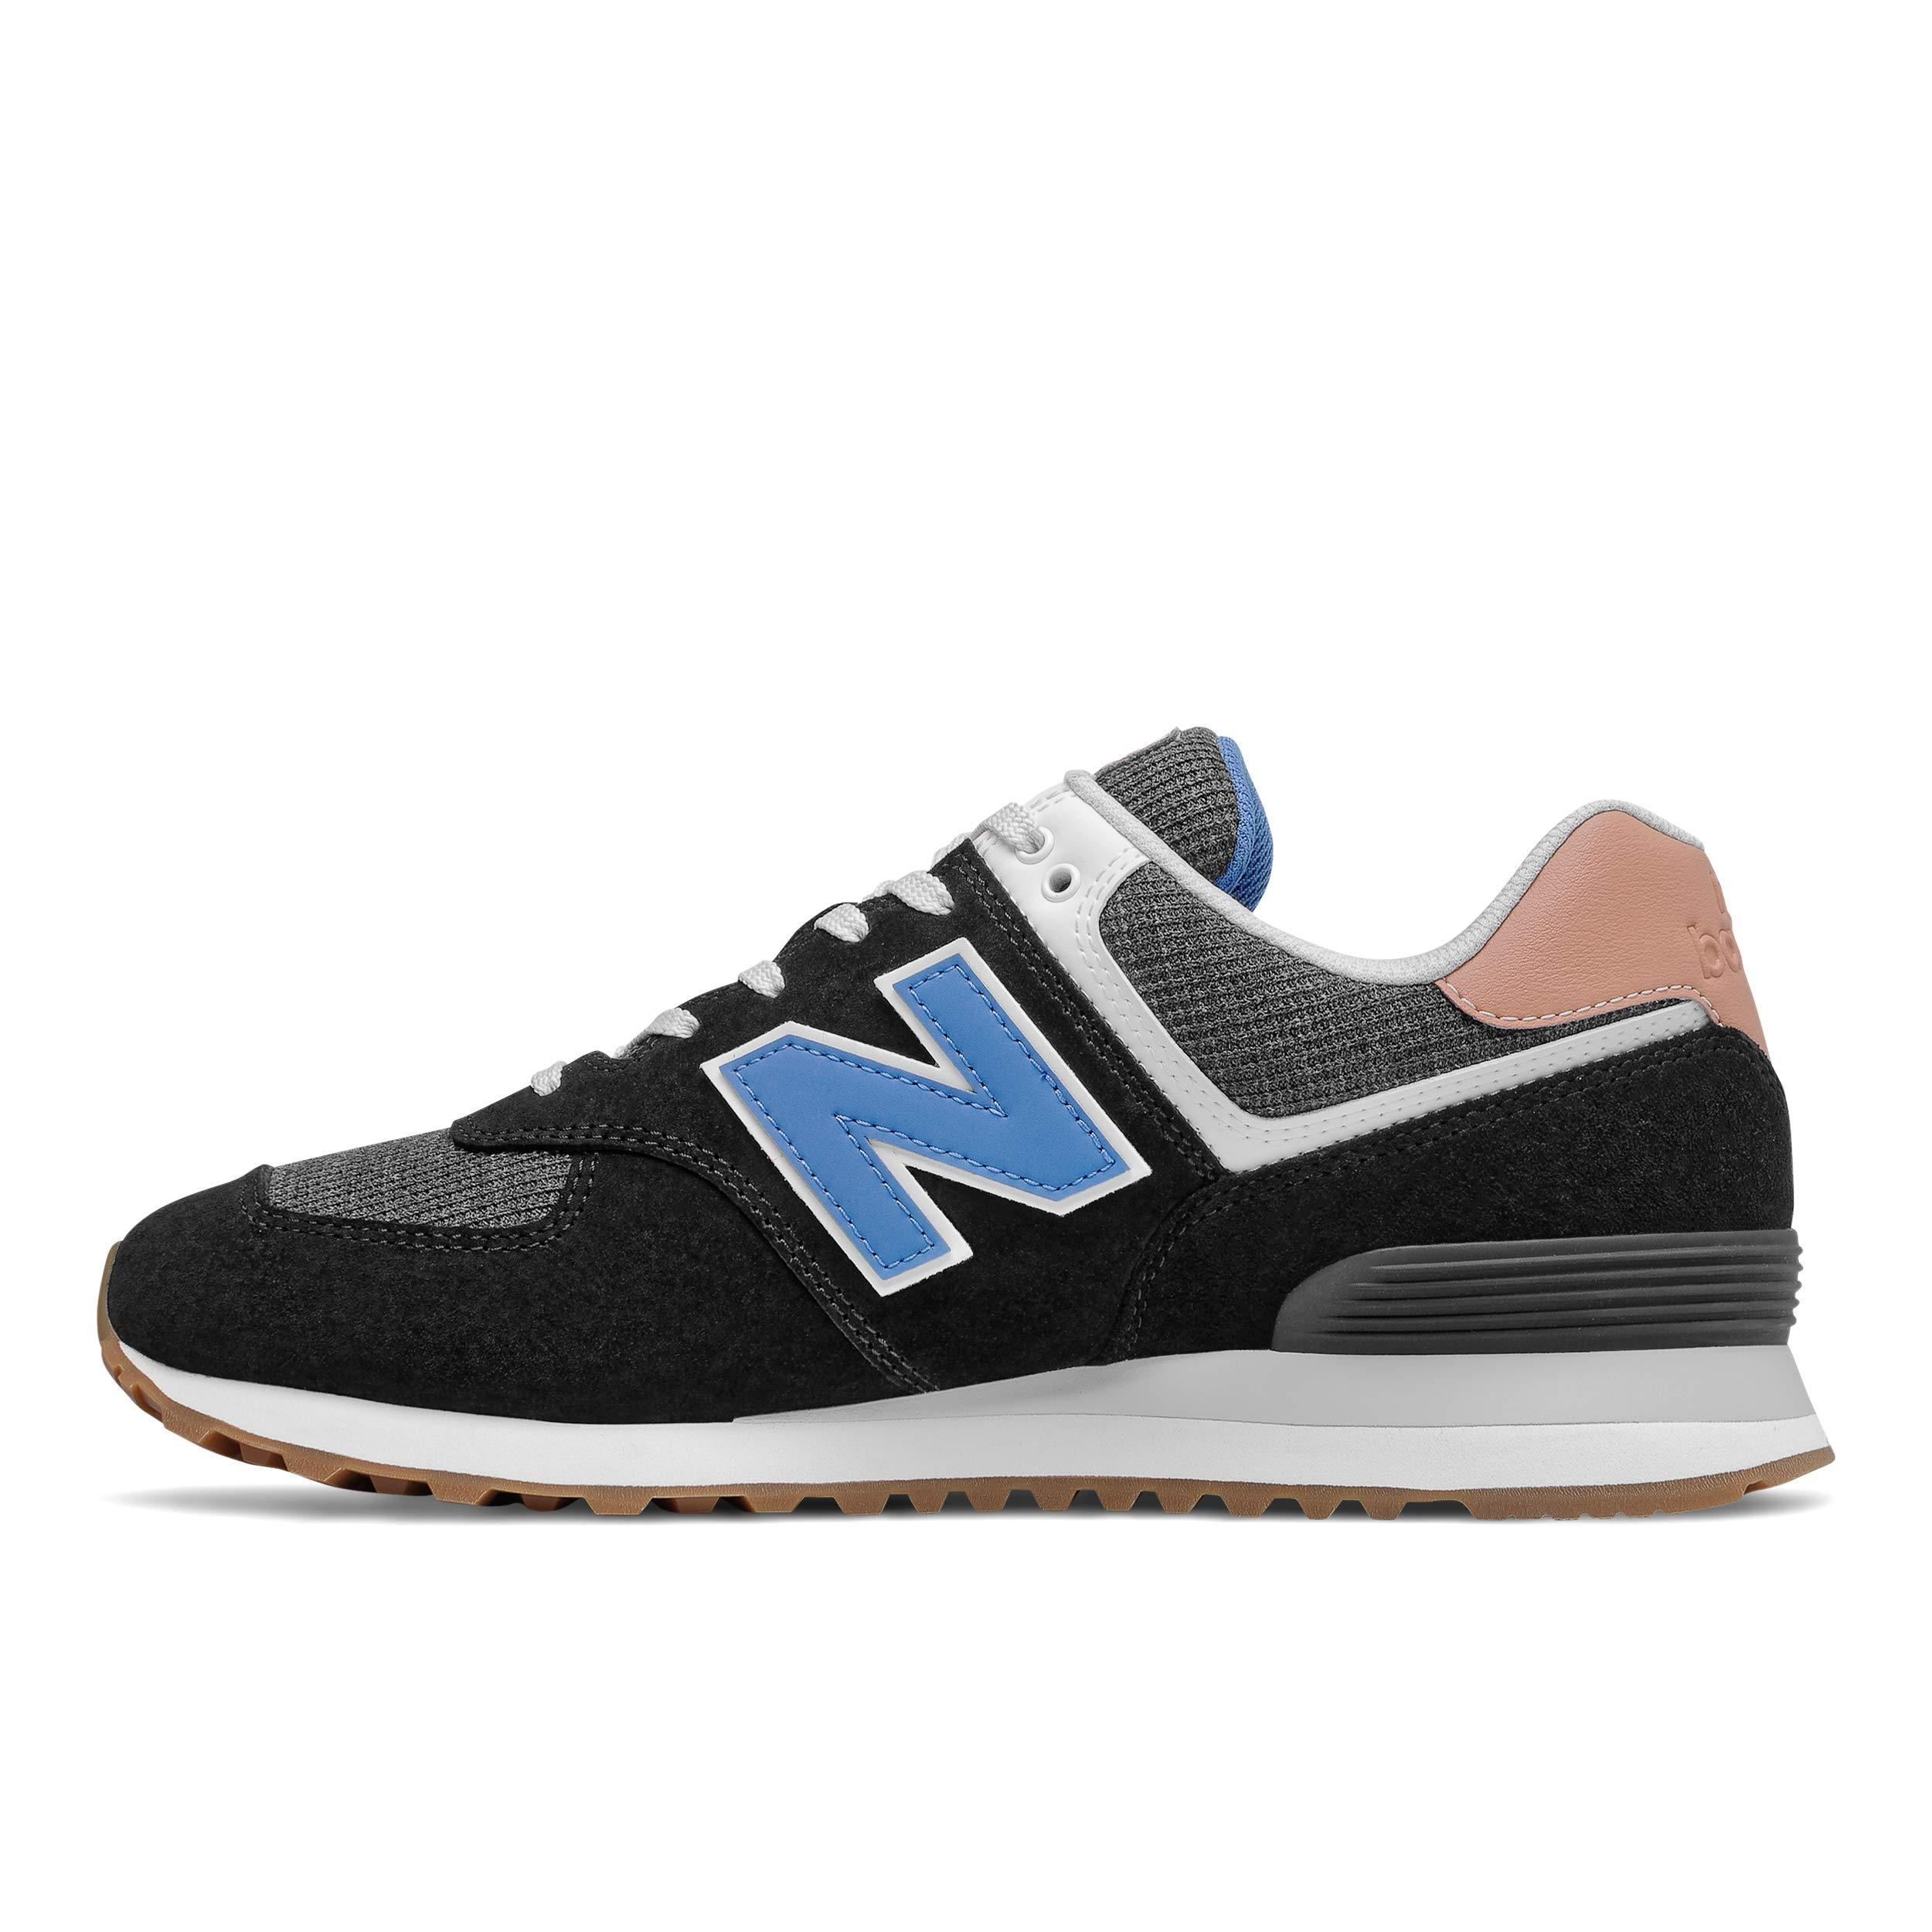 New Balance Iconic 574 V2 Track & Field Shoes in Black/Faded ...